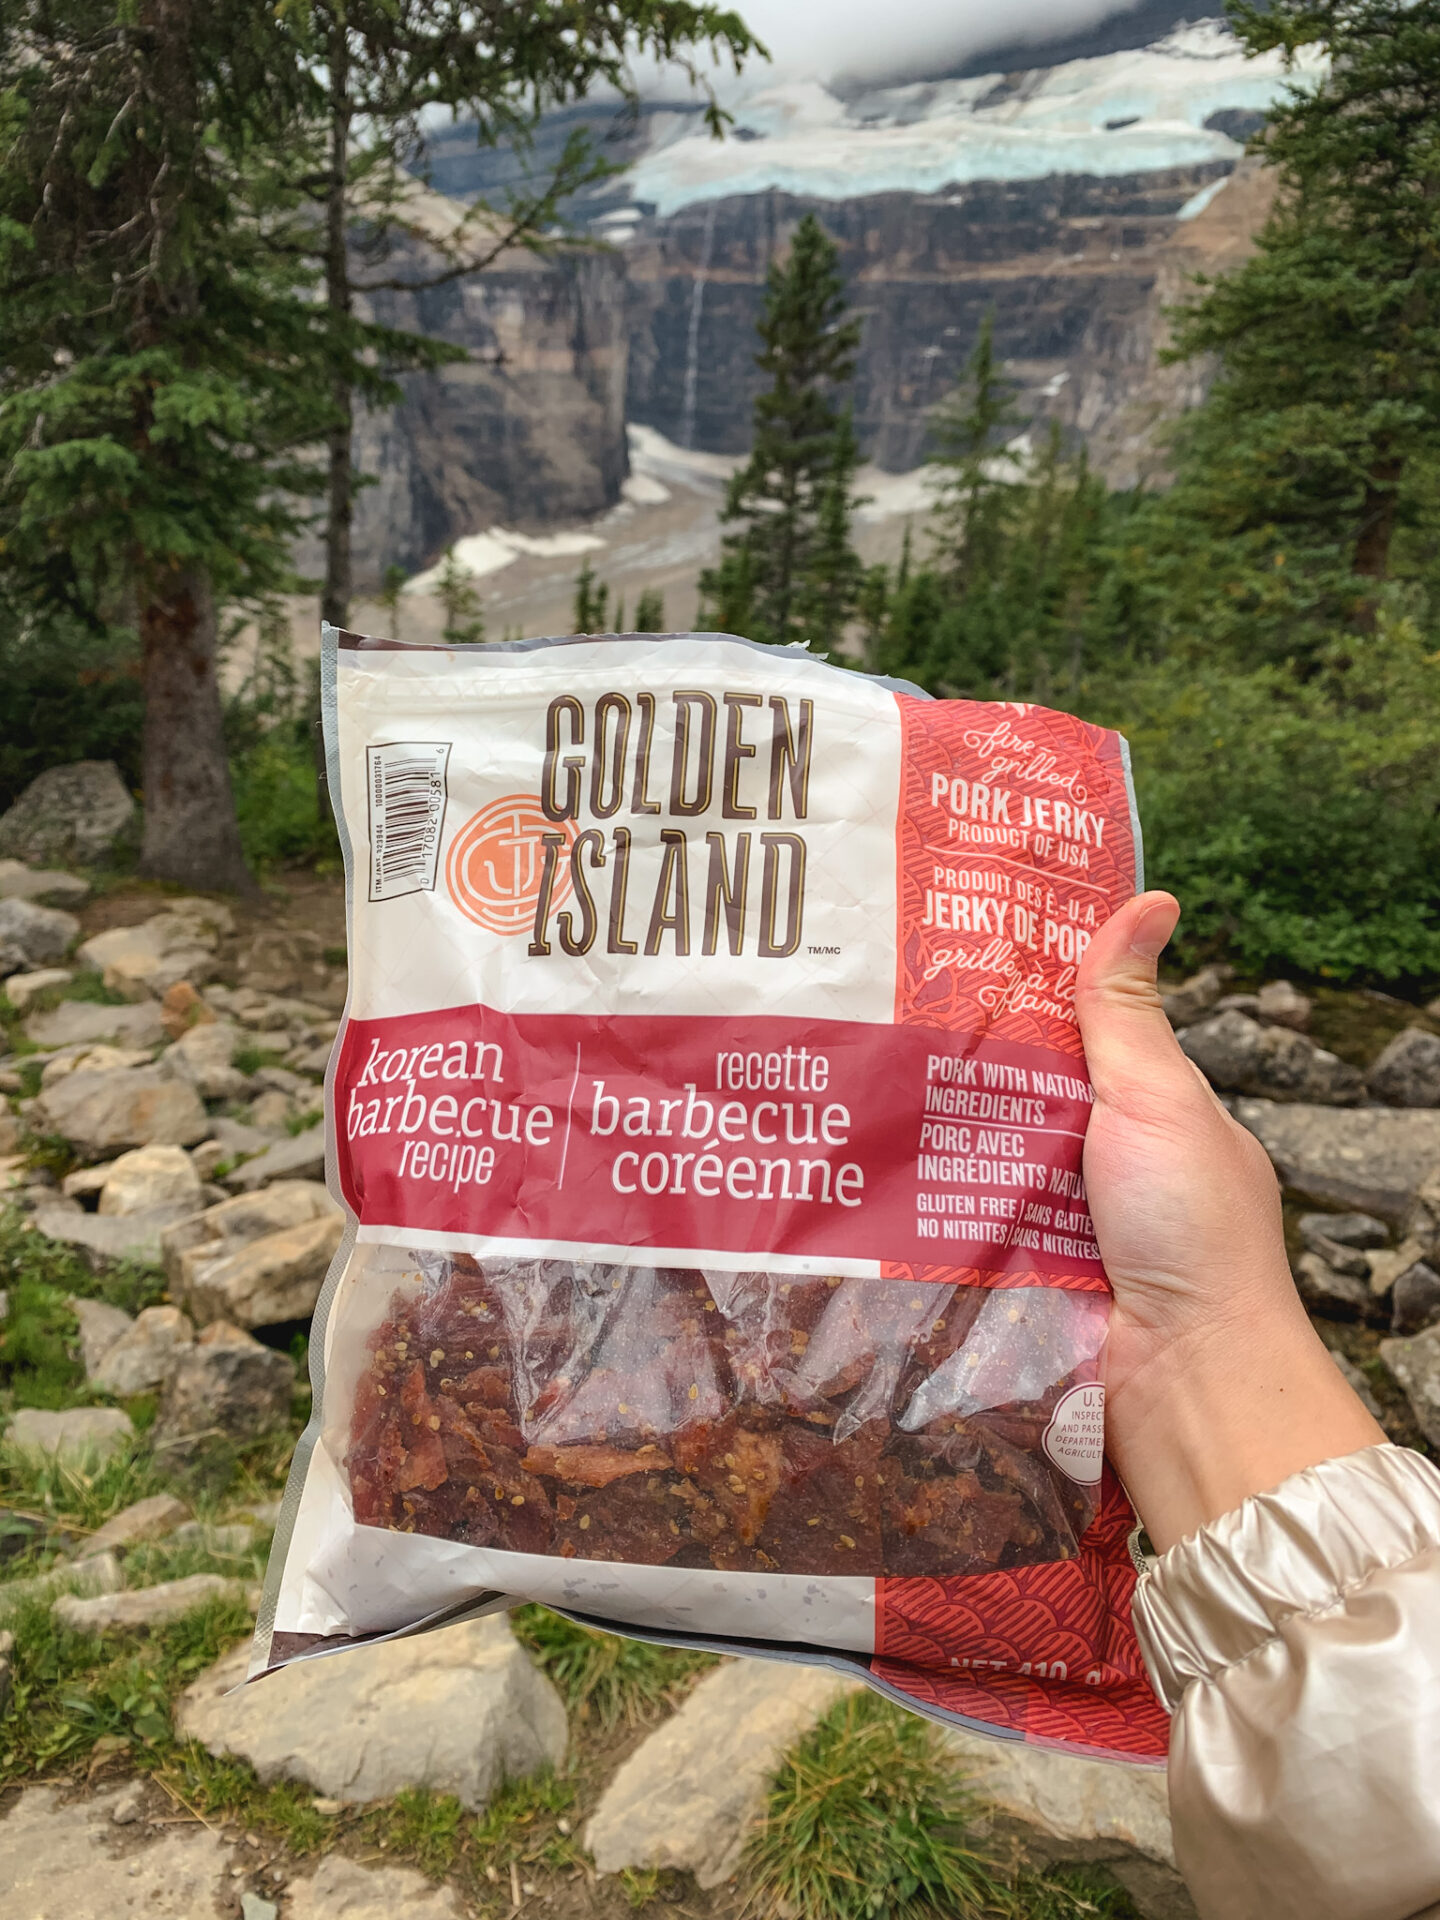 Golden Island pork jerky at the Plain of the Six Glaciers hiking trail in Lake Louise, Alberta